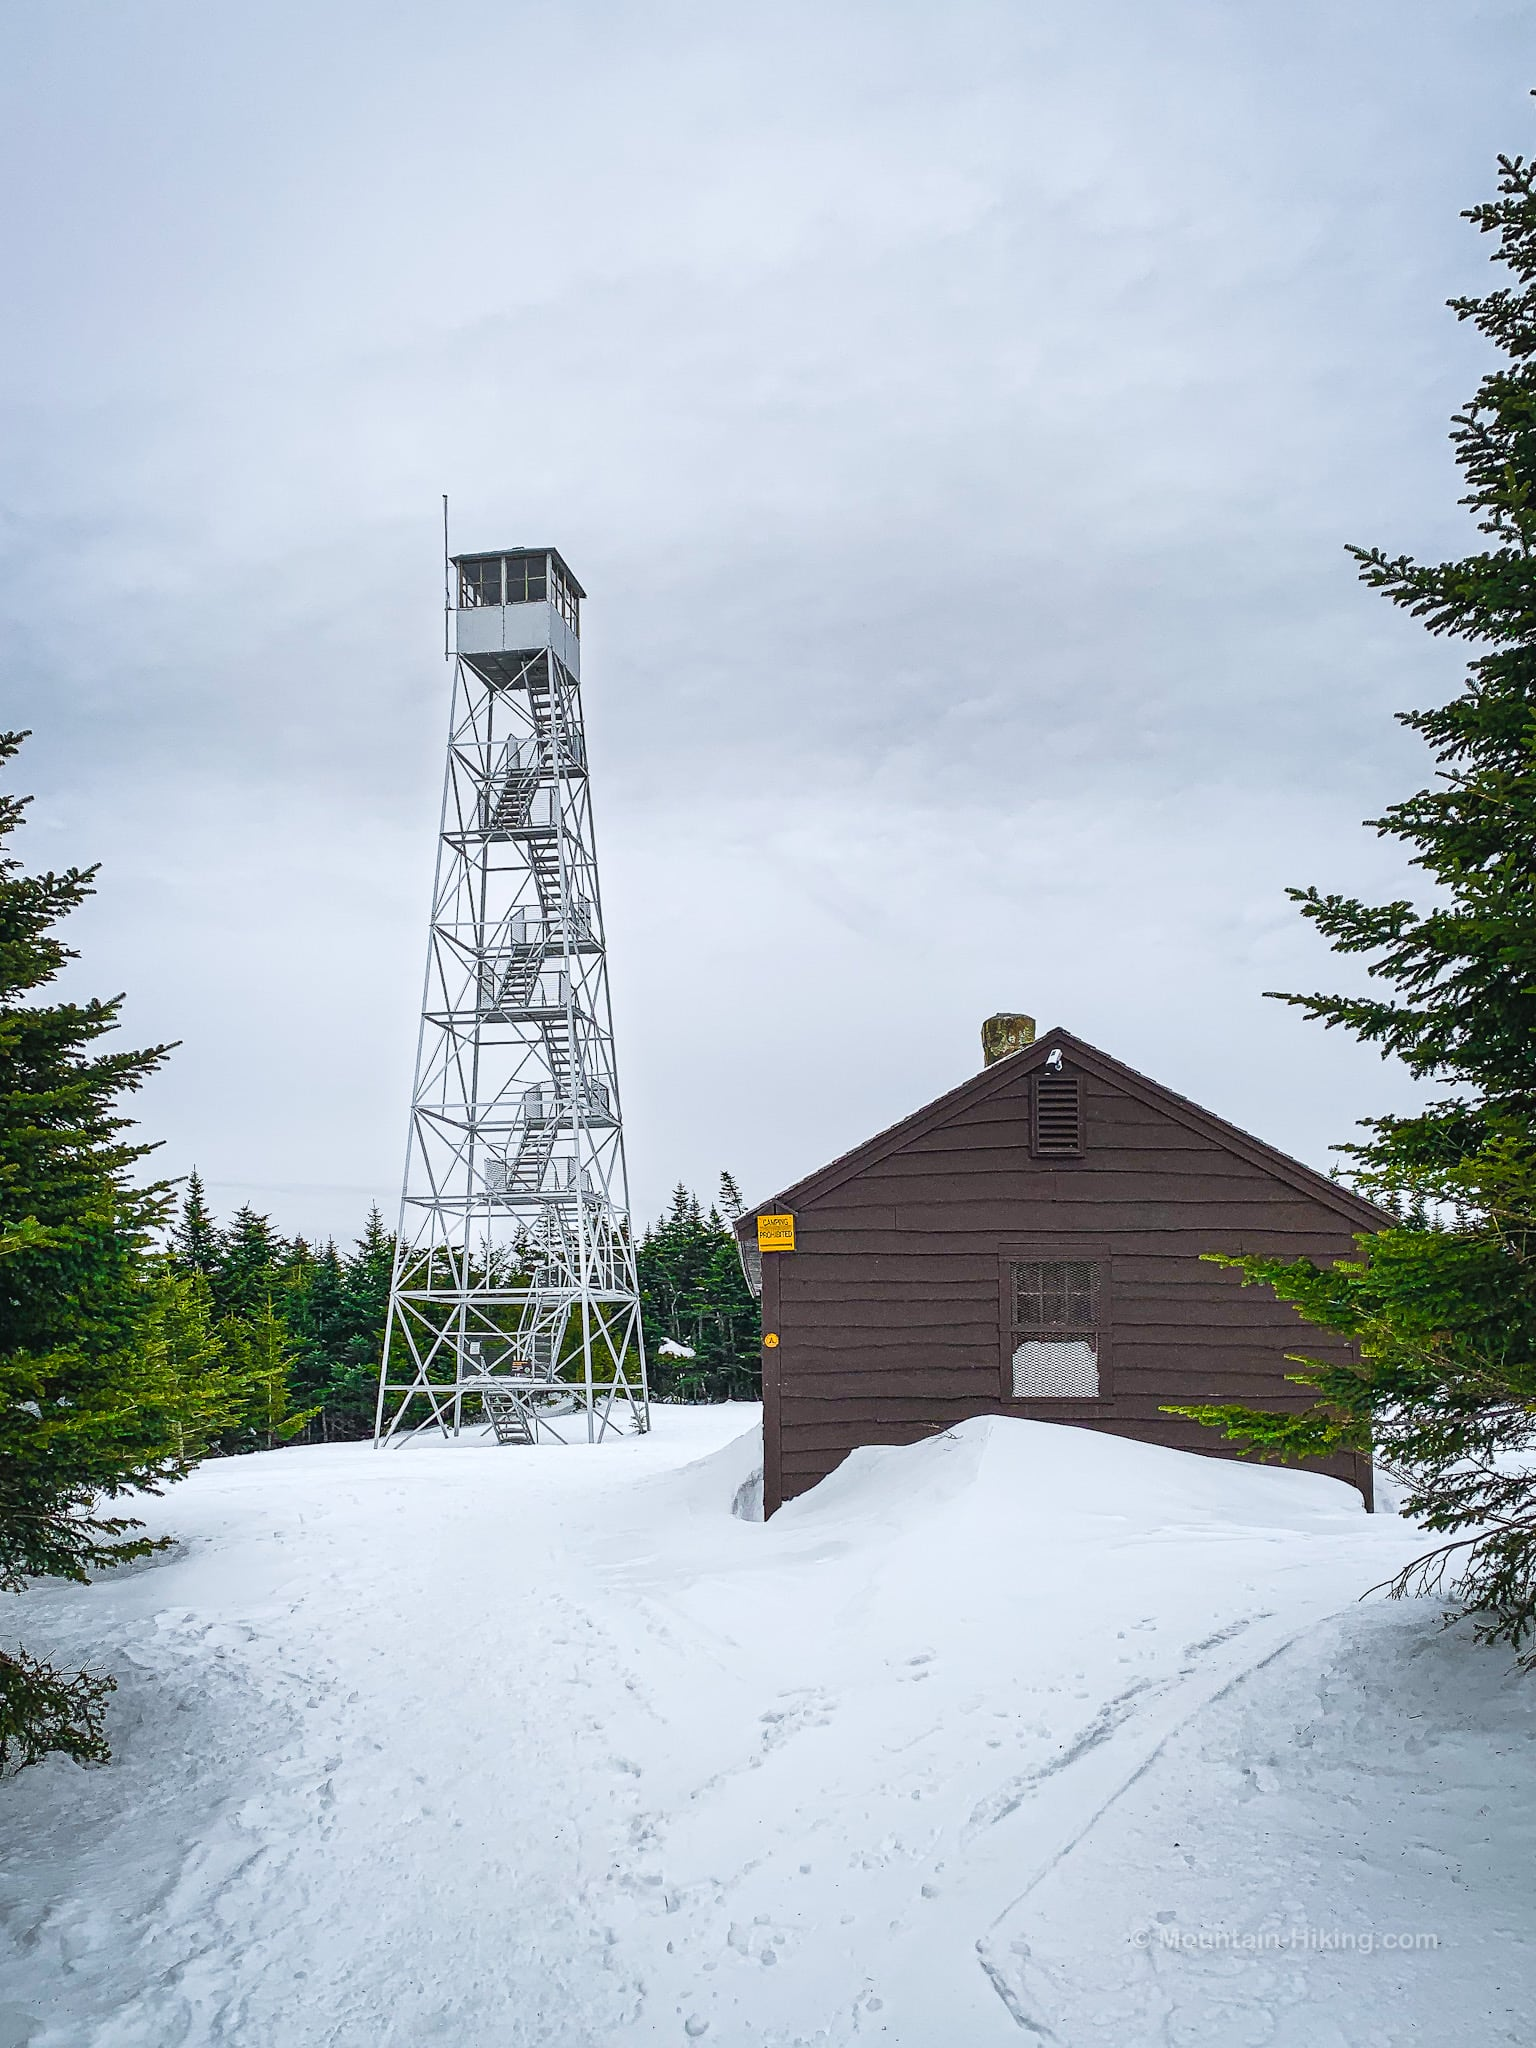 fire tower and cabin in snow